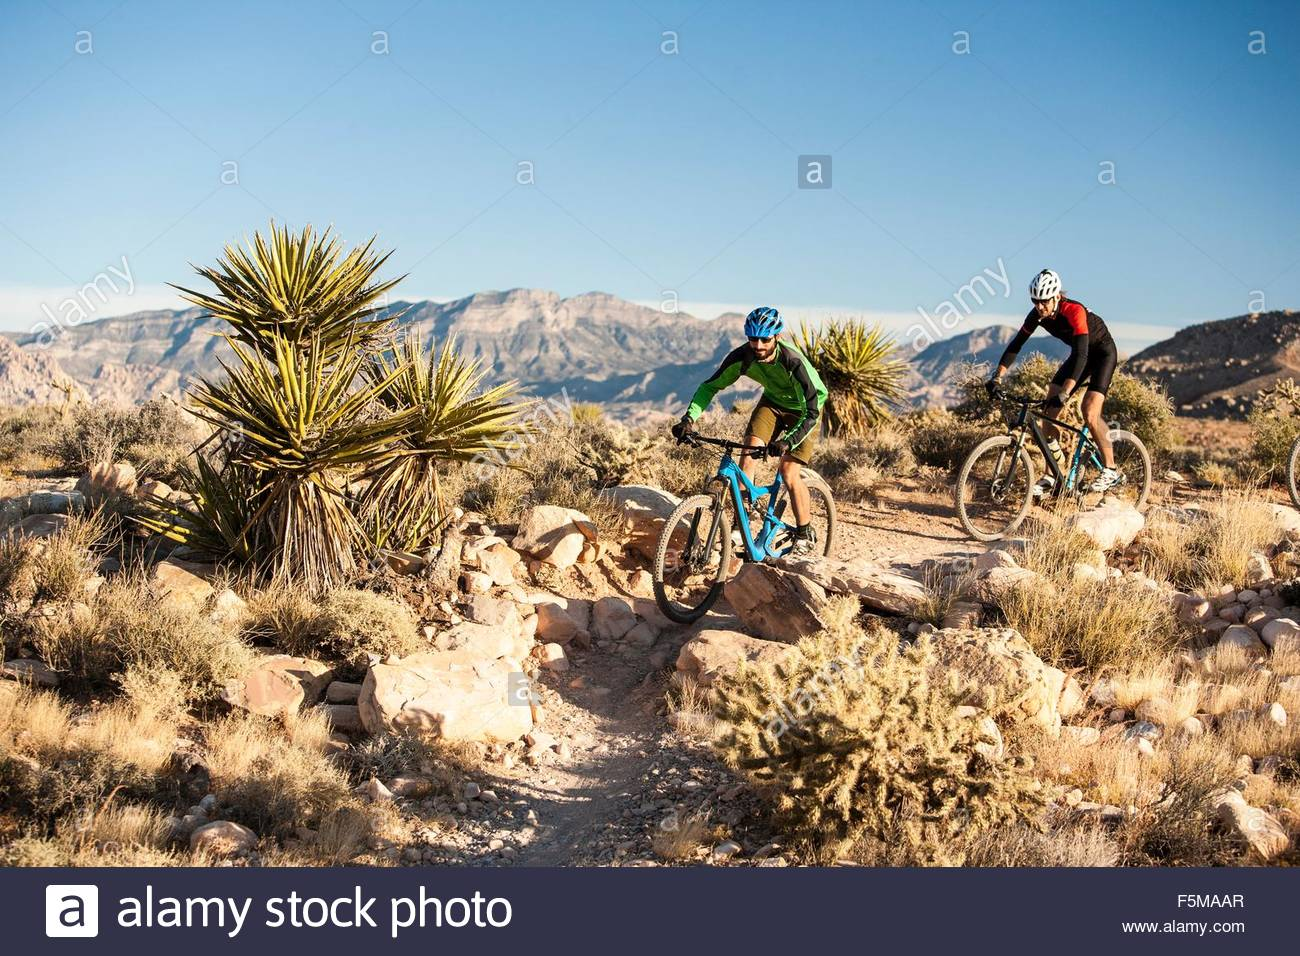 Mountain bikers, Las Vegas, Nevada, USA - Stock Image